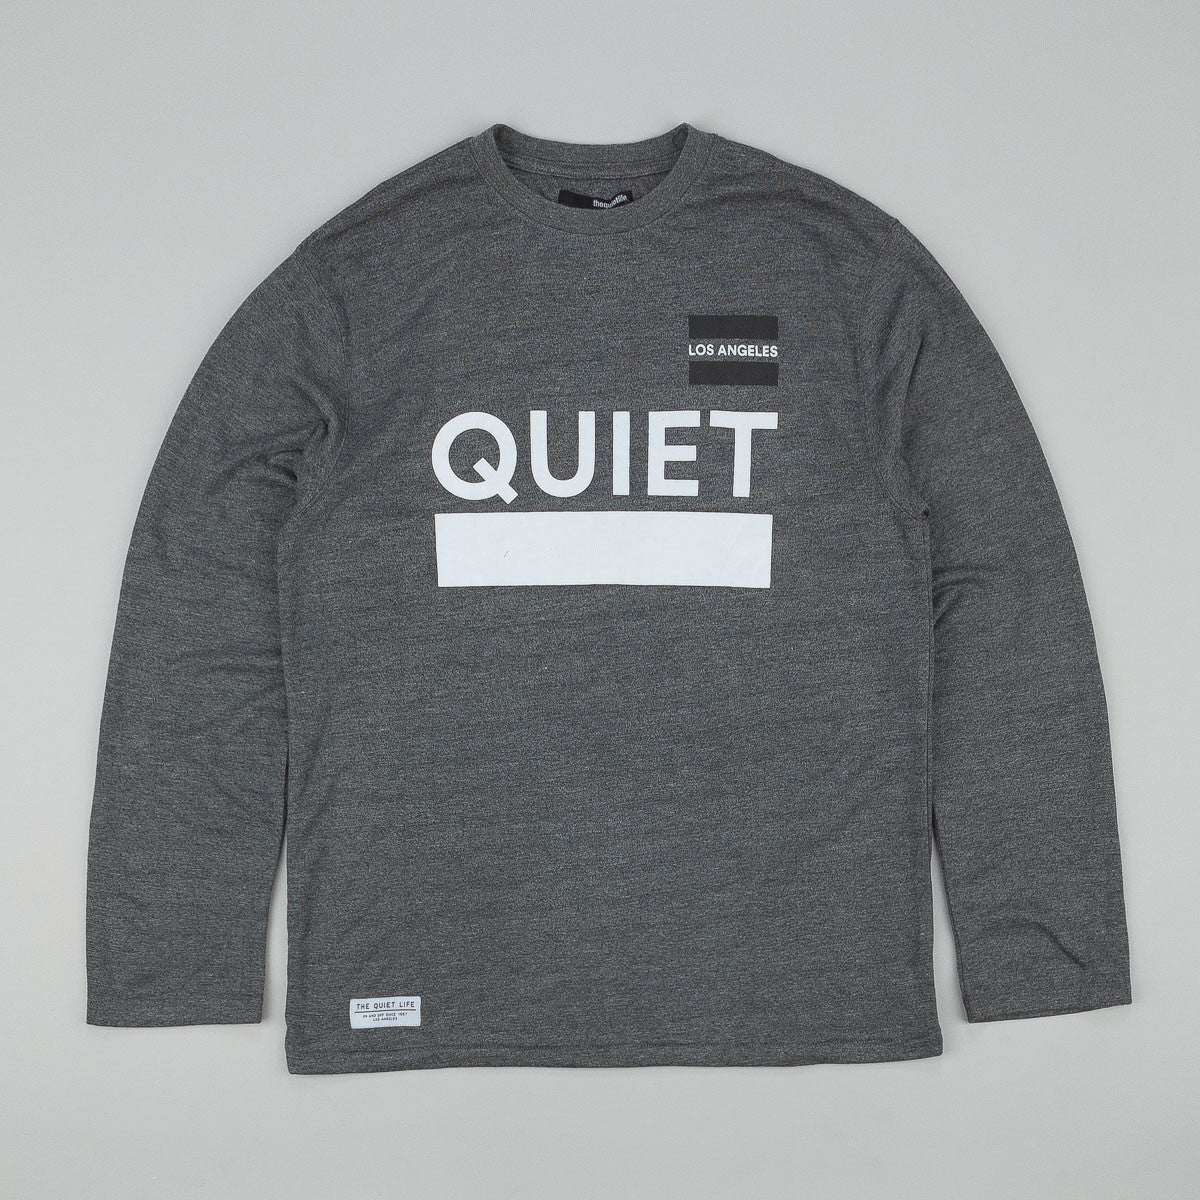 The Quiet Life League L/S T-Shirt - Heather Grey